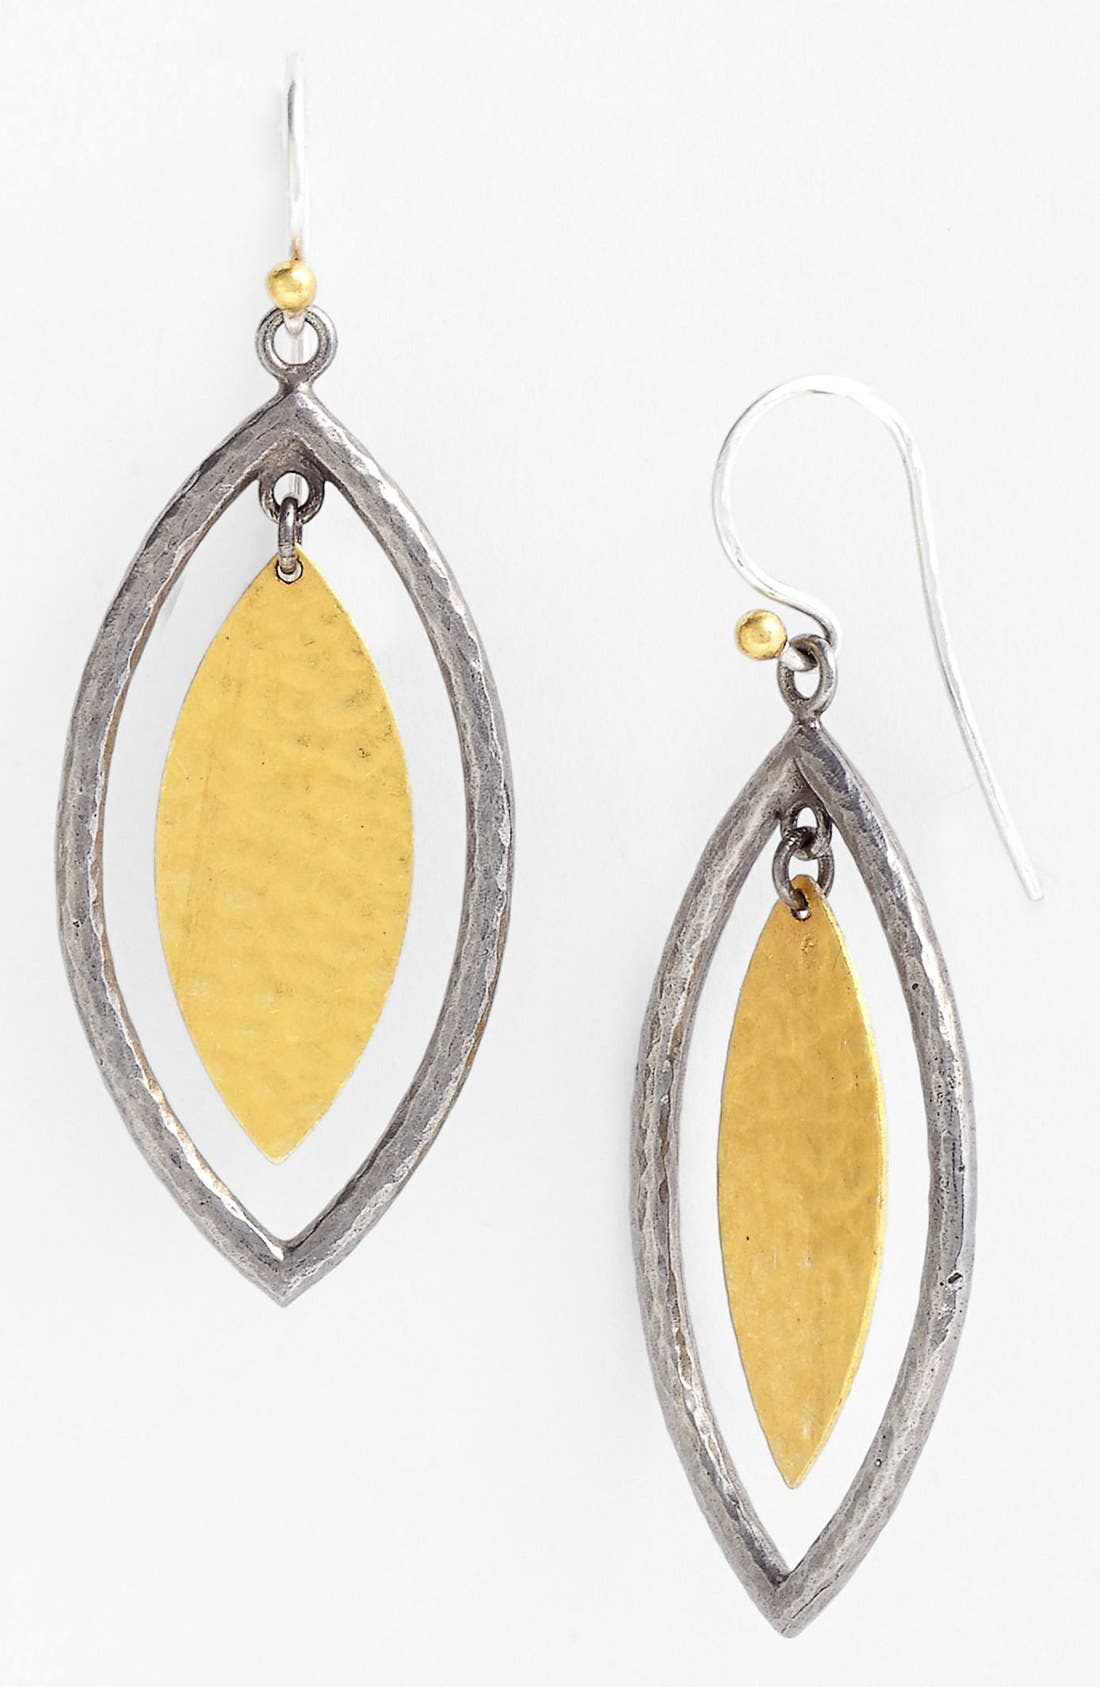 Alternate Image 1 Selected - Gurhan 'Willow' Blackened Silver & Gold Earrings